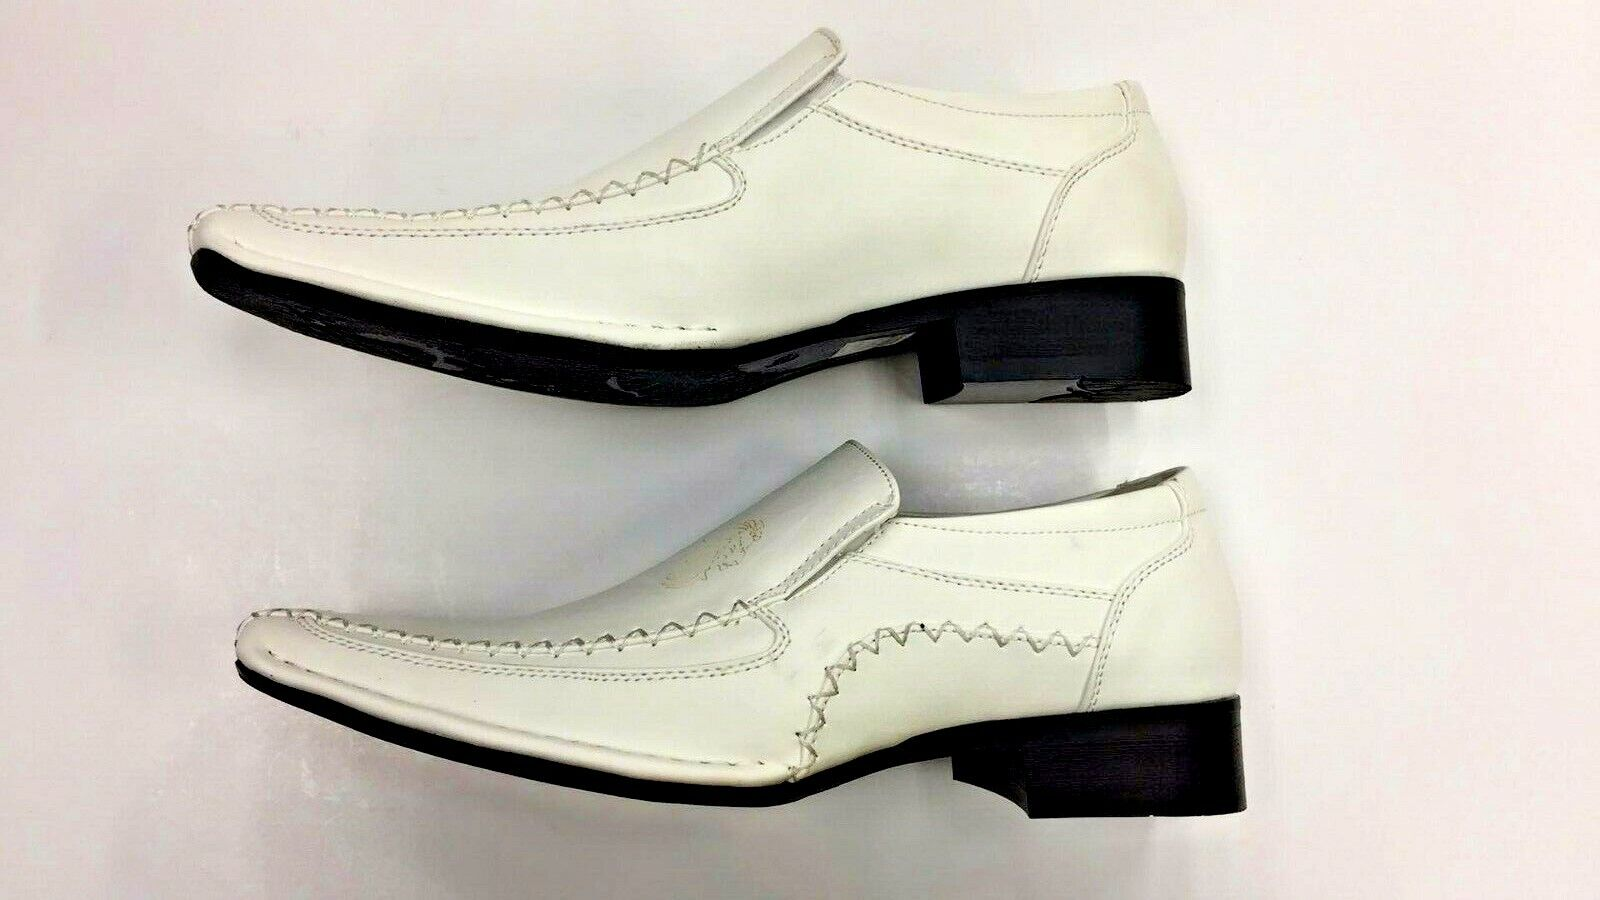 New! Dress Casual Shoes for Men Slip on Leather Lining White